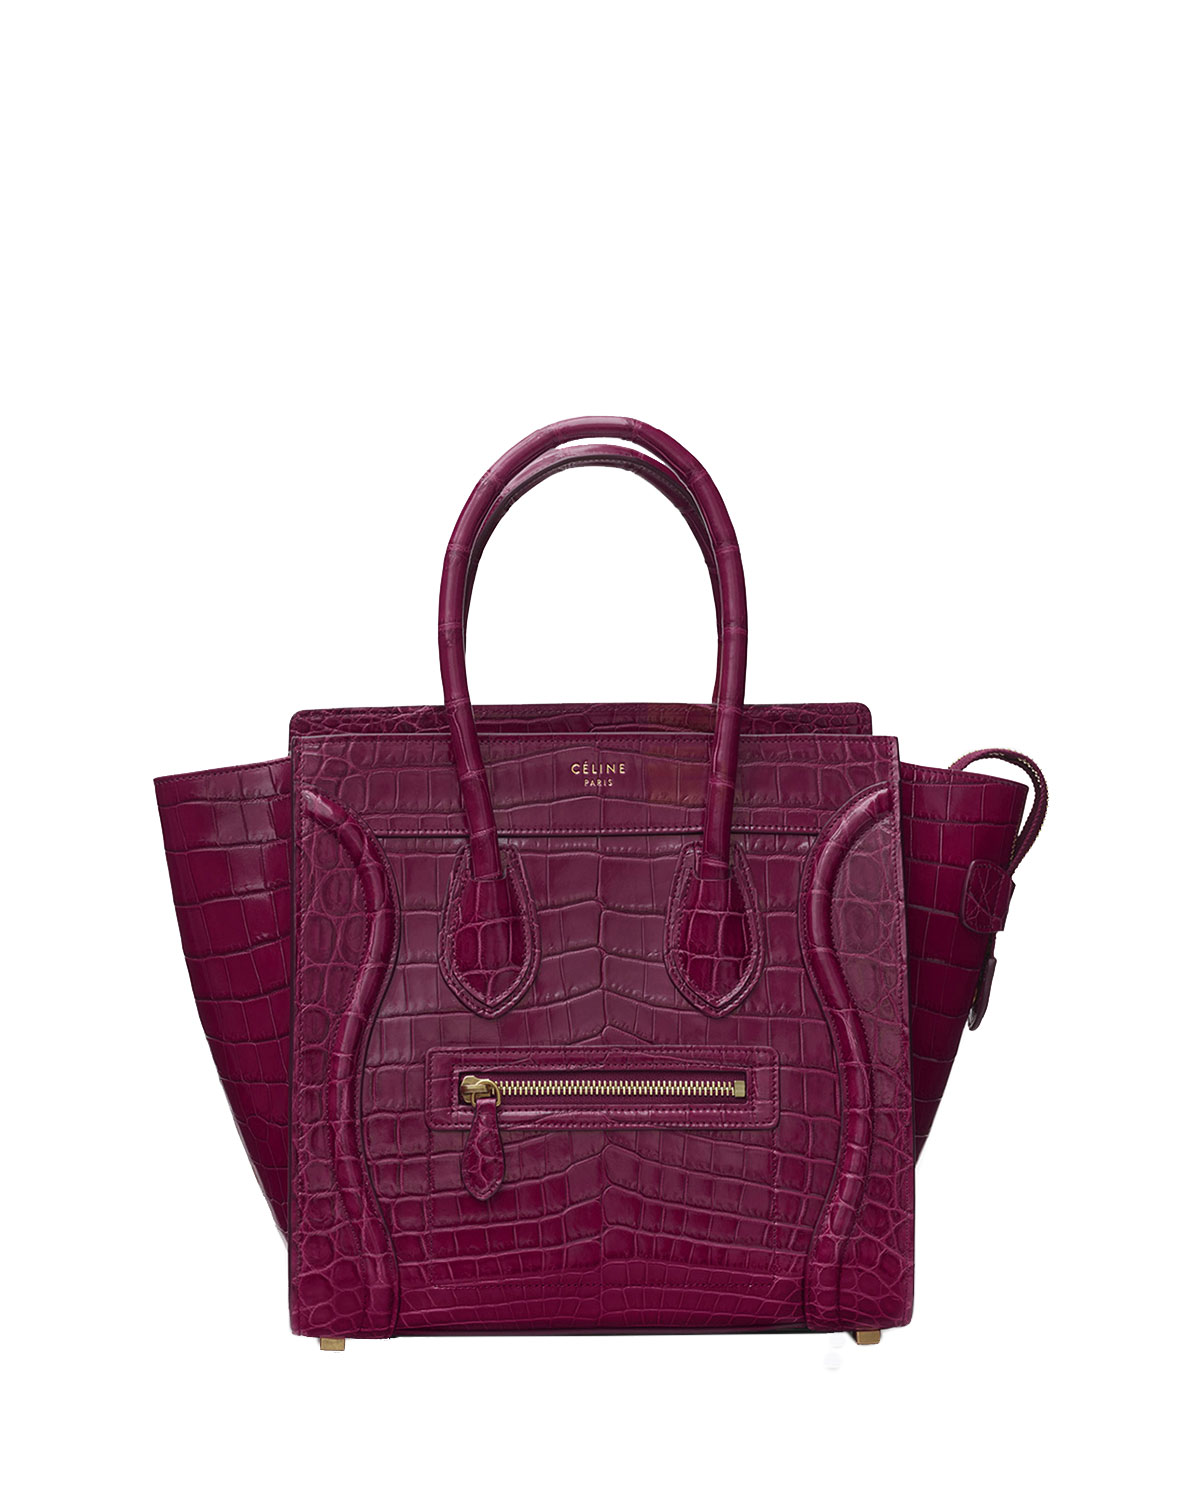 ad403c8189 Celine Luggage Micro Alligator Tote Bag